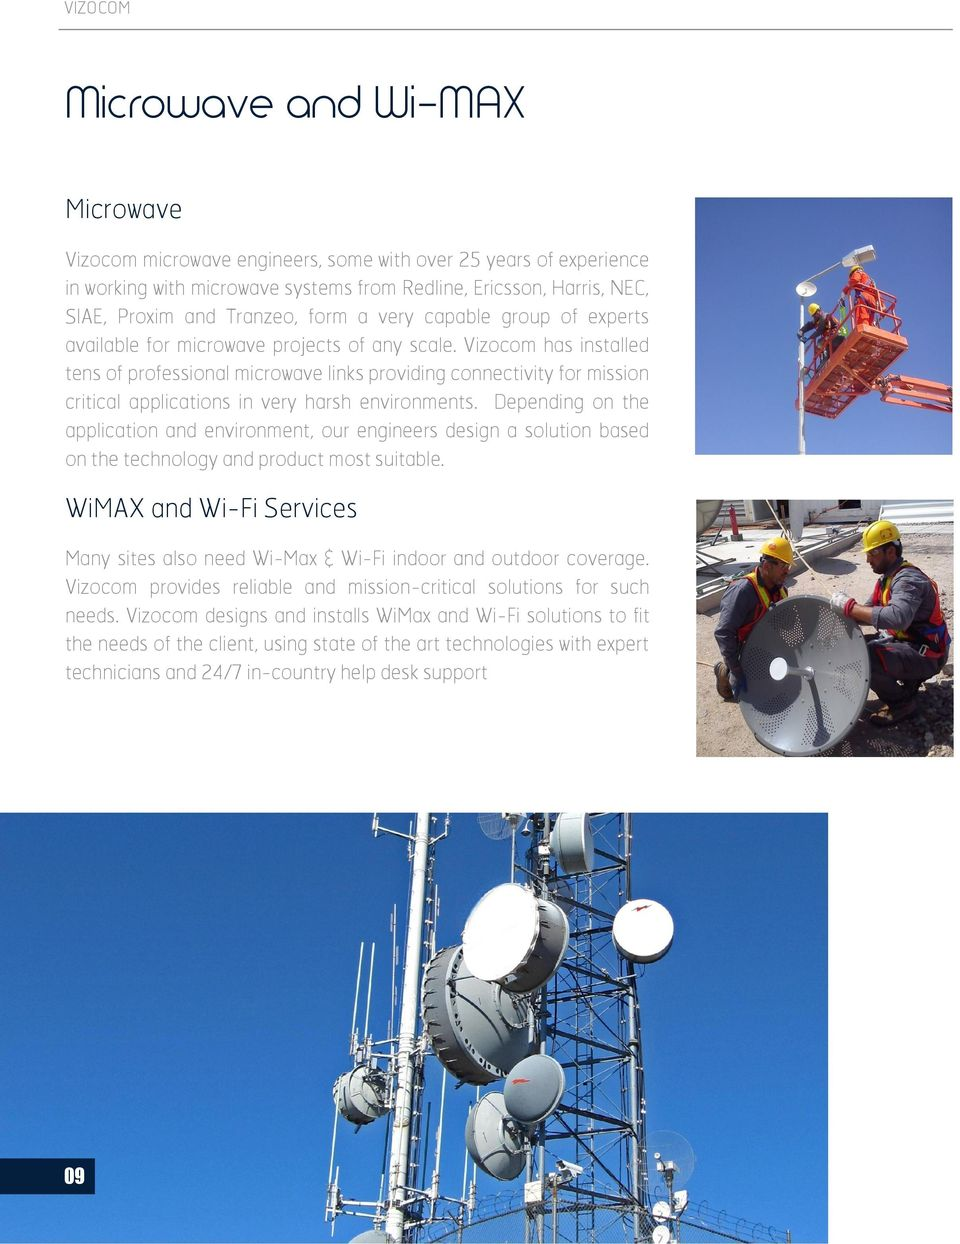 Vizocom has installed tens of professional microwave links providing connectivity for mission critical applications in very harsh environments.